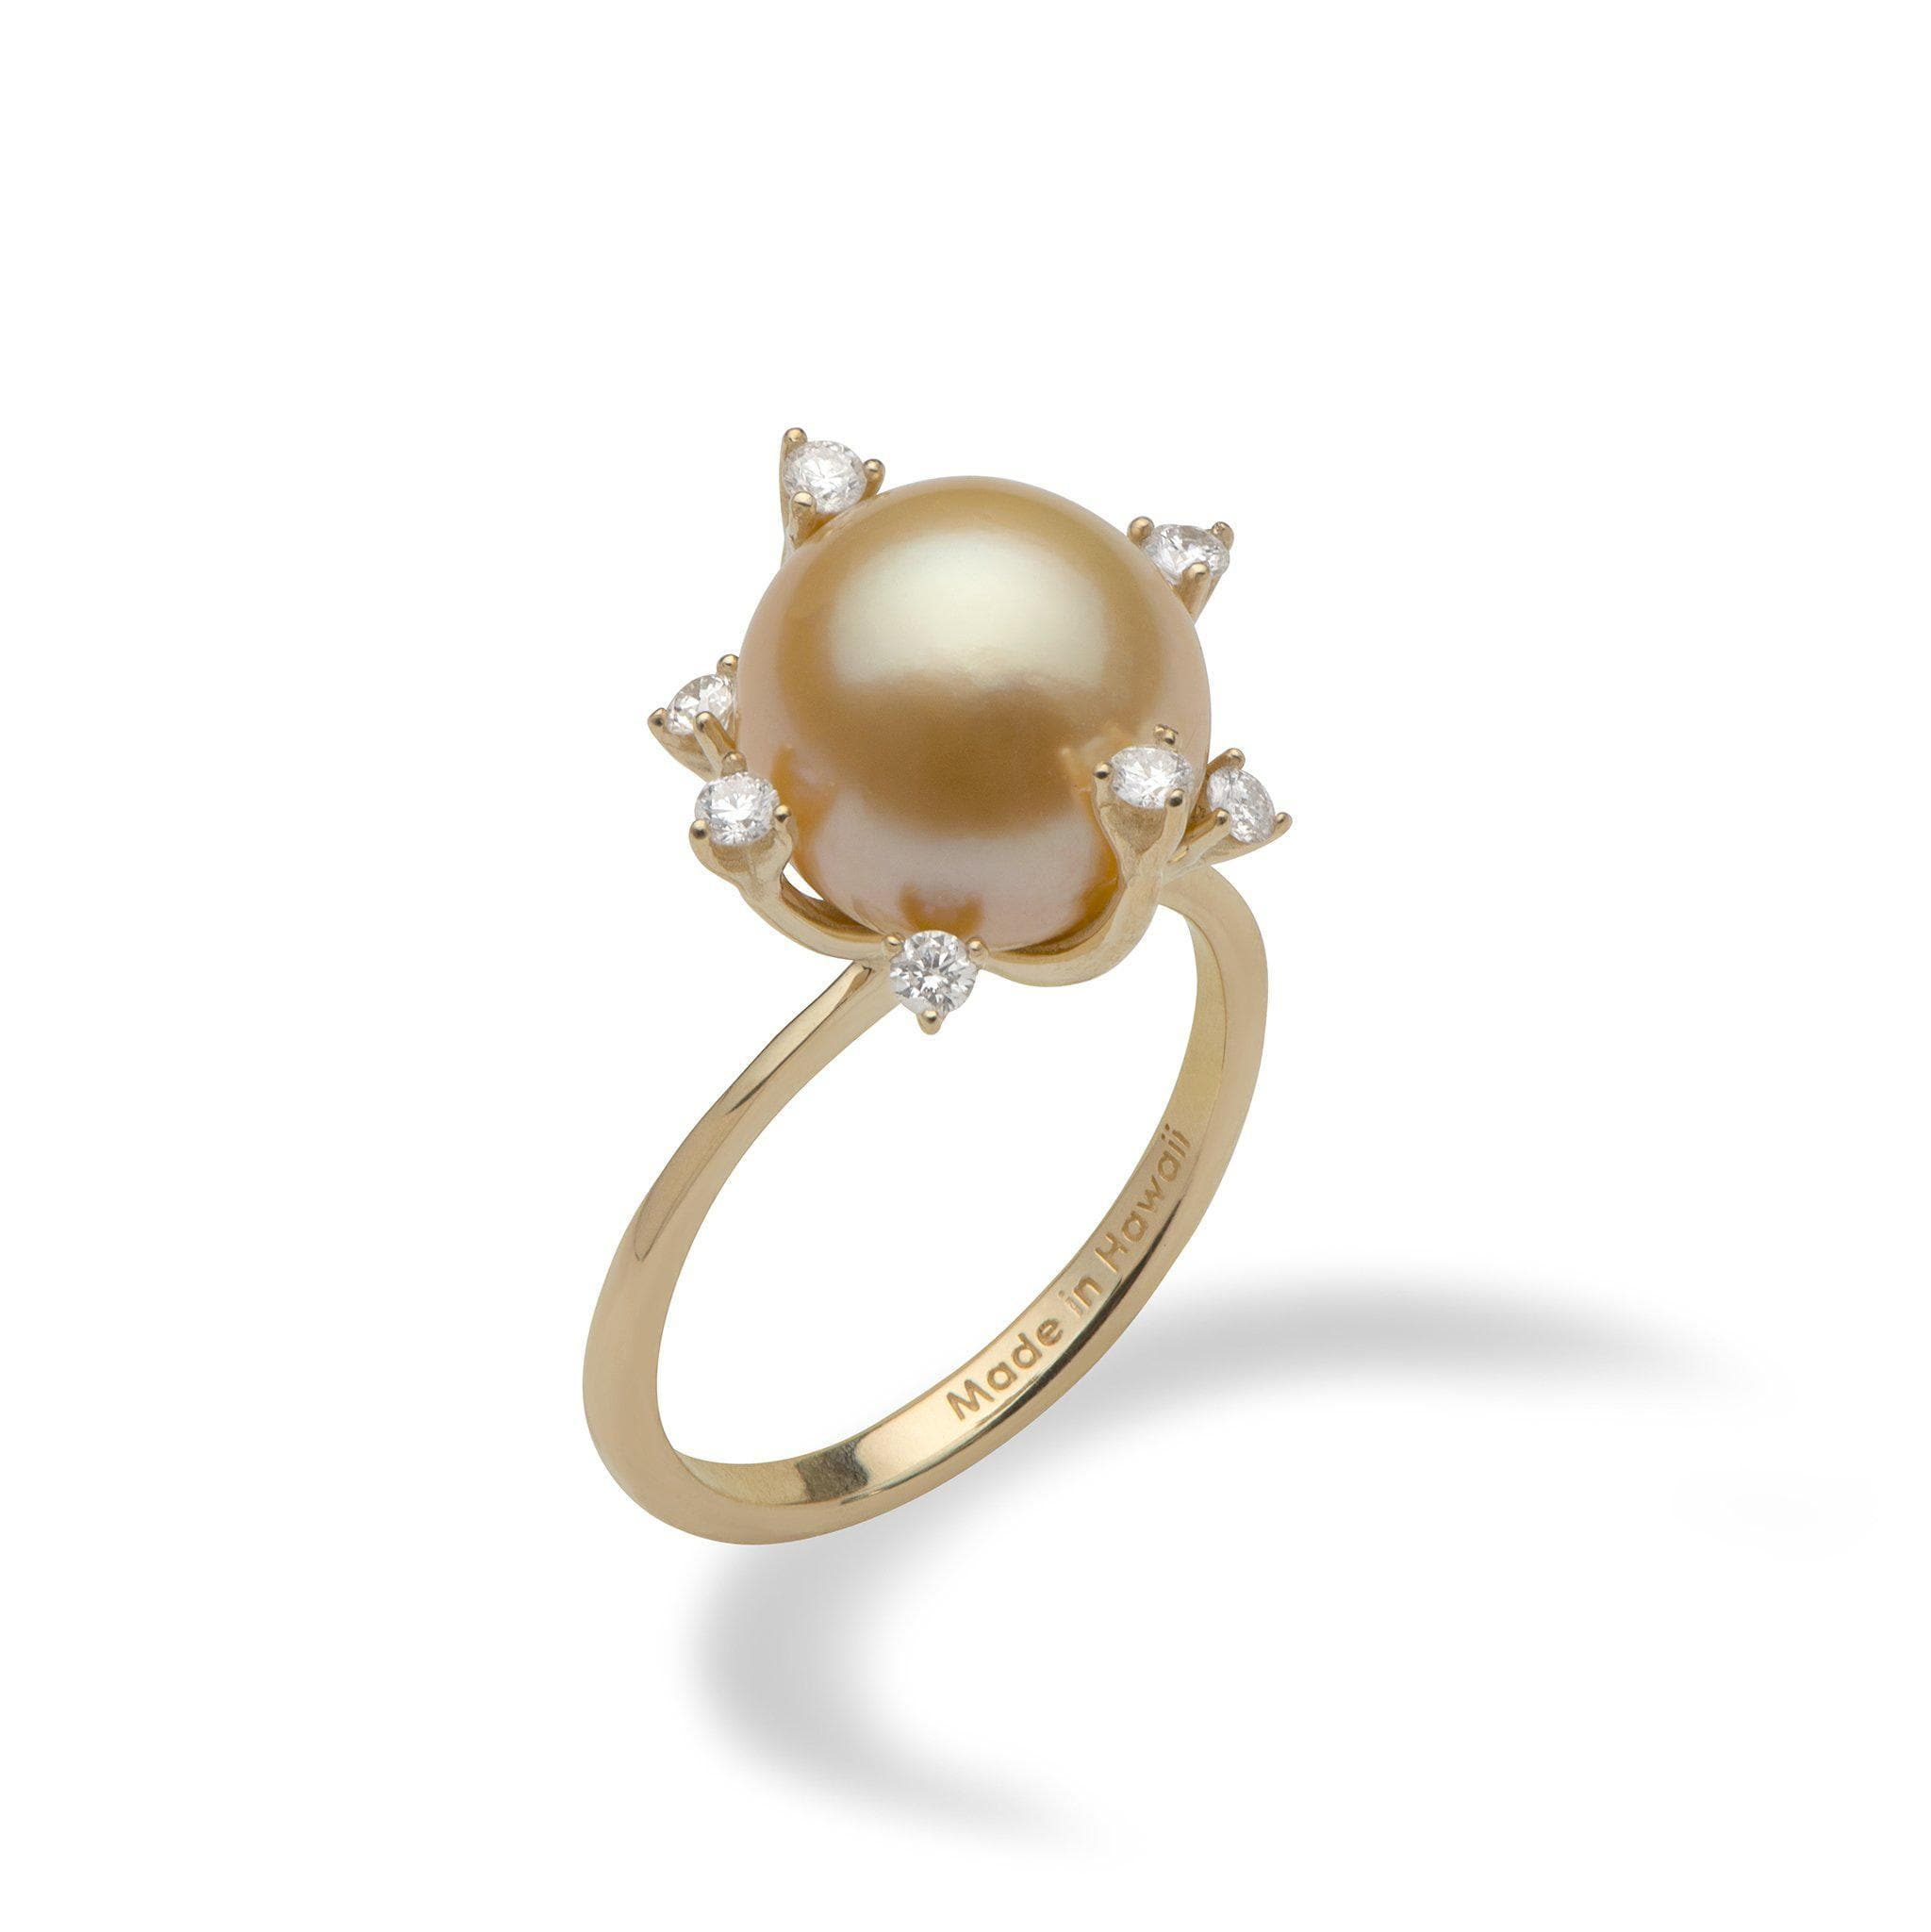 052a883f0 South Sea Golden Pearl Ring with Diamonds in 14K Yellow Gold (10-11mm)